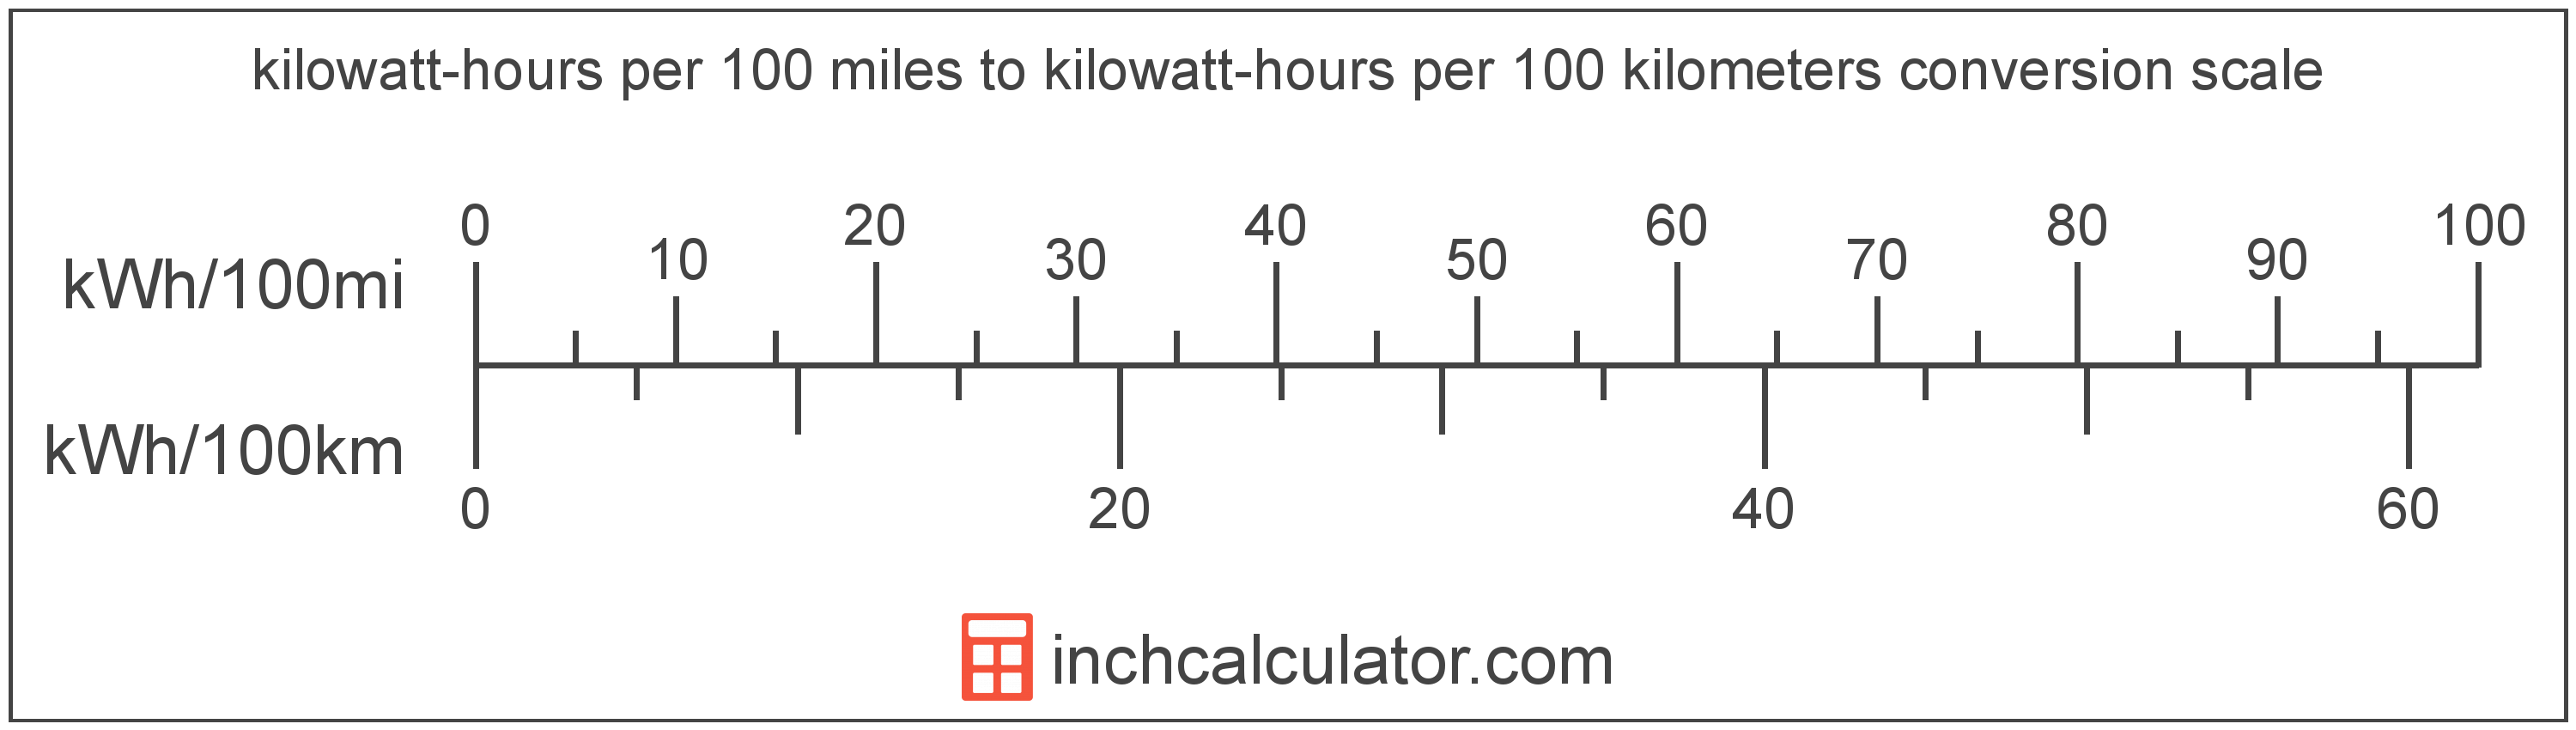 conversion scale showing kilowatt-hours per 100 miles and equivalent kilowatt-hours per 100 kilometers electric car efficiency values